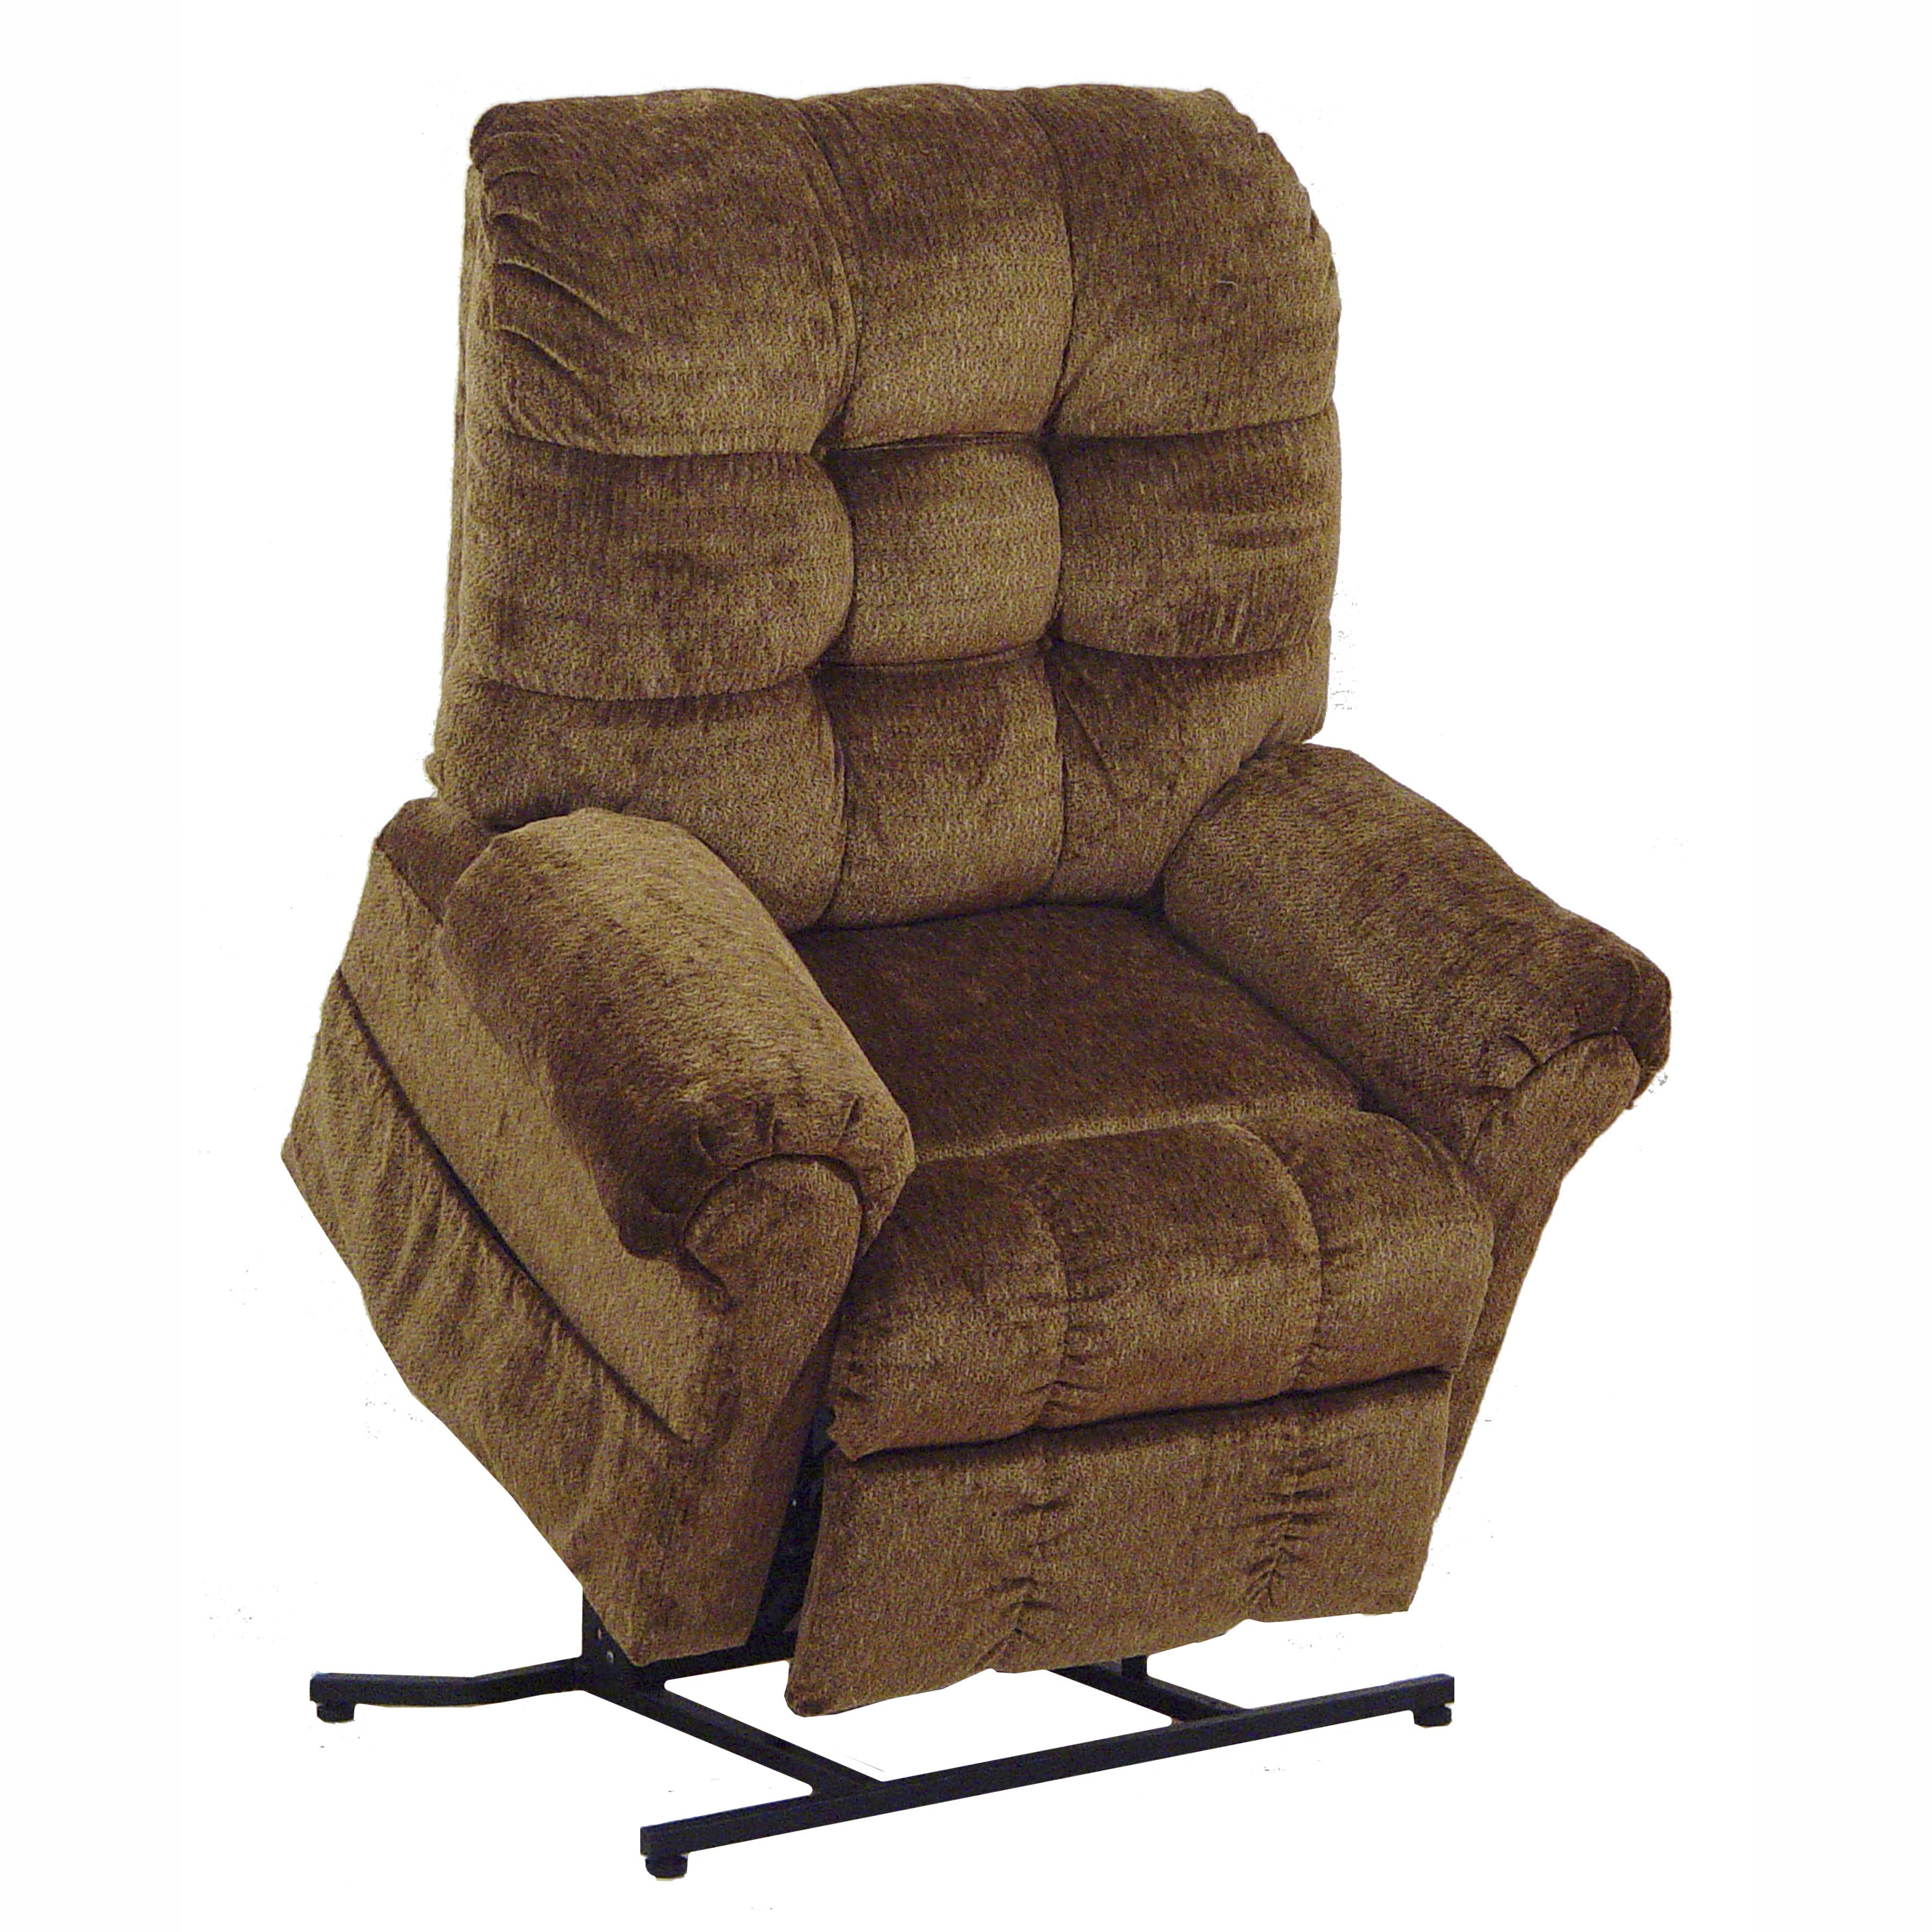 size of armchair lift wing dining phenomenal fl suv boy full best with modern fresh lazy jacksonville states rest recliner fantastic arm electric recover hip repair to rental chairs drive use still occasional parts leather walmart vintage wood how image room high baby the adorable what medicare medical chair cozy